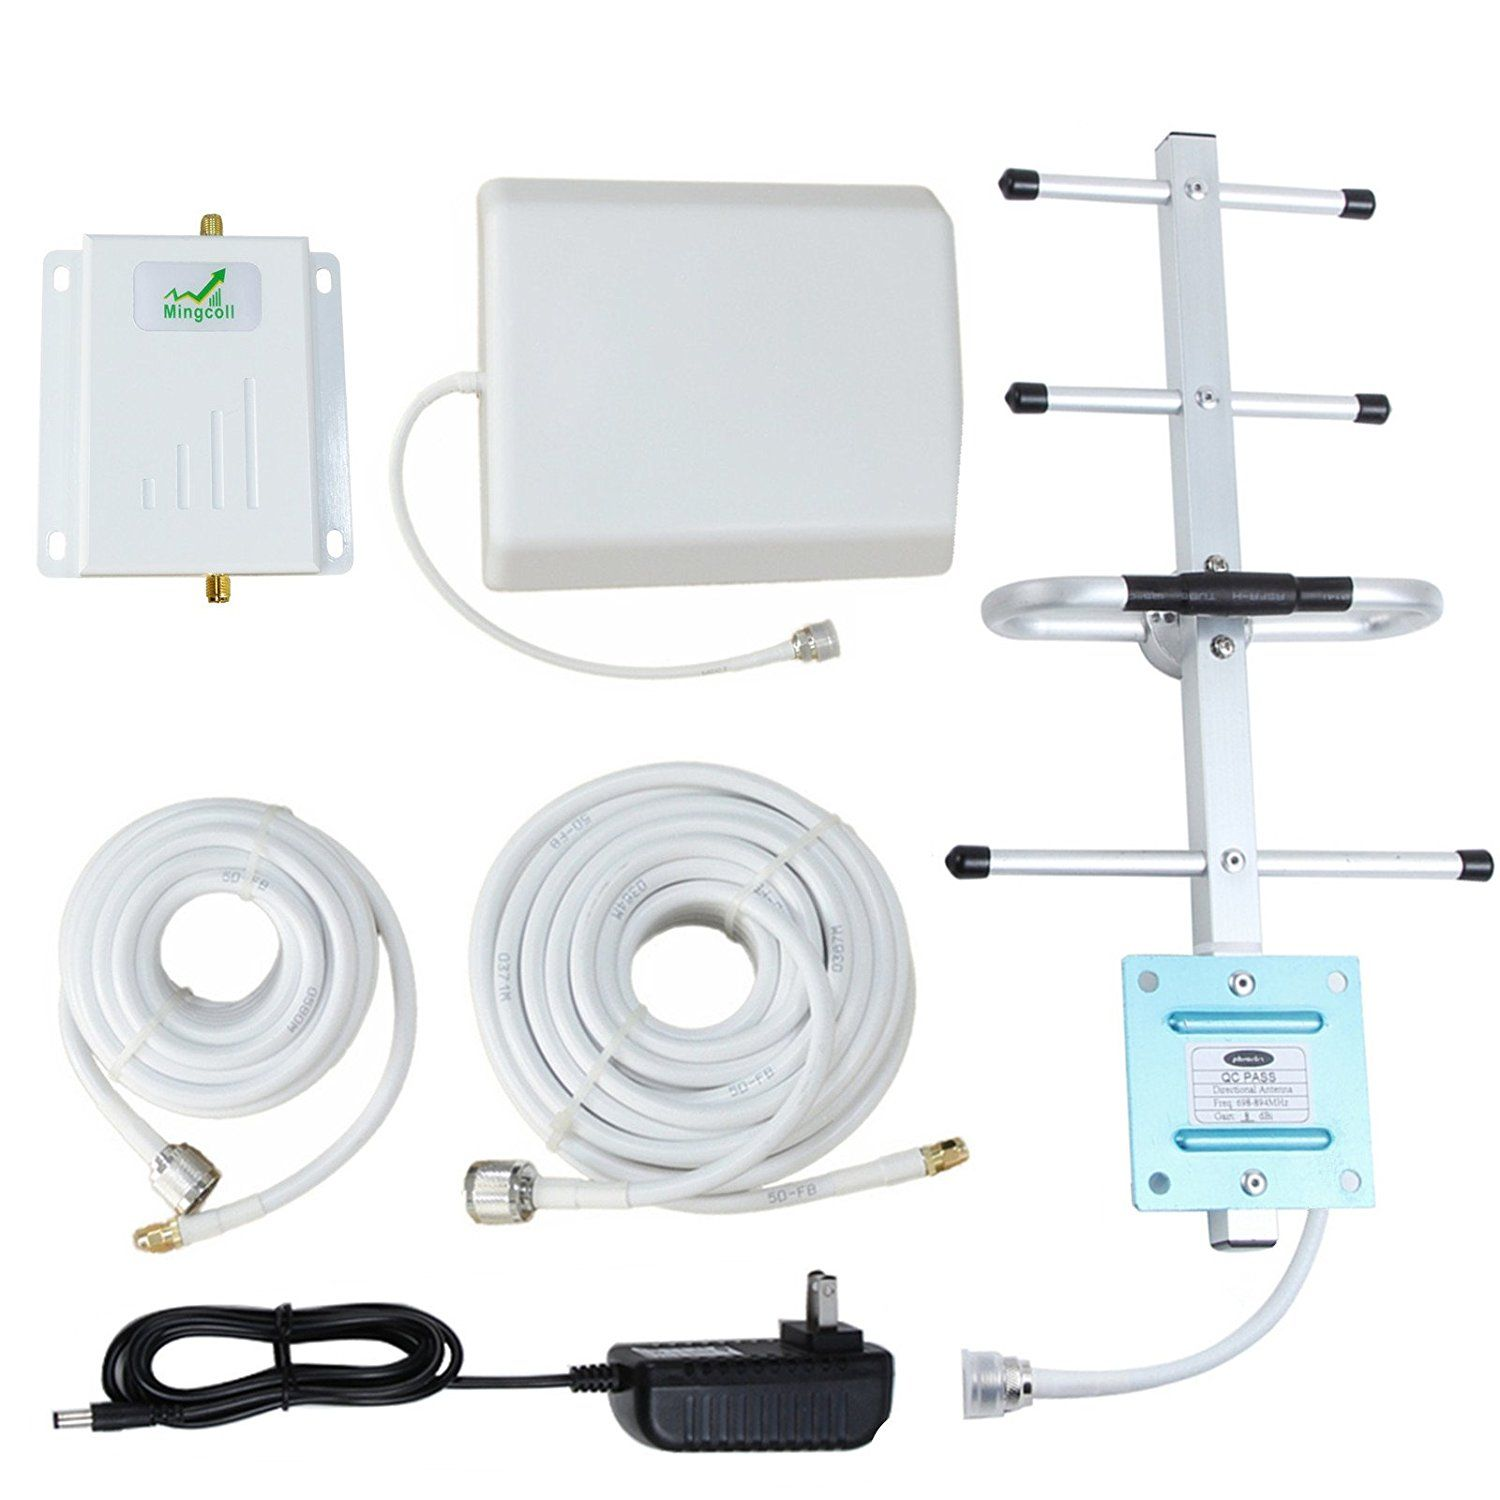 dd8f761fe6d477 Amazon.com: Verizon Cell Signal Booster 4G Lte 700MHz Band 13 Cell Phone  Signal Repeater Amplifier with Outdoor Directional Yagi Antenna Kit for  Home and ...